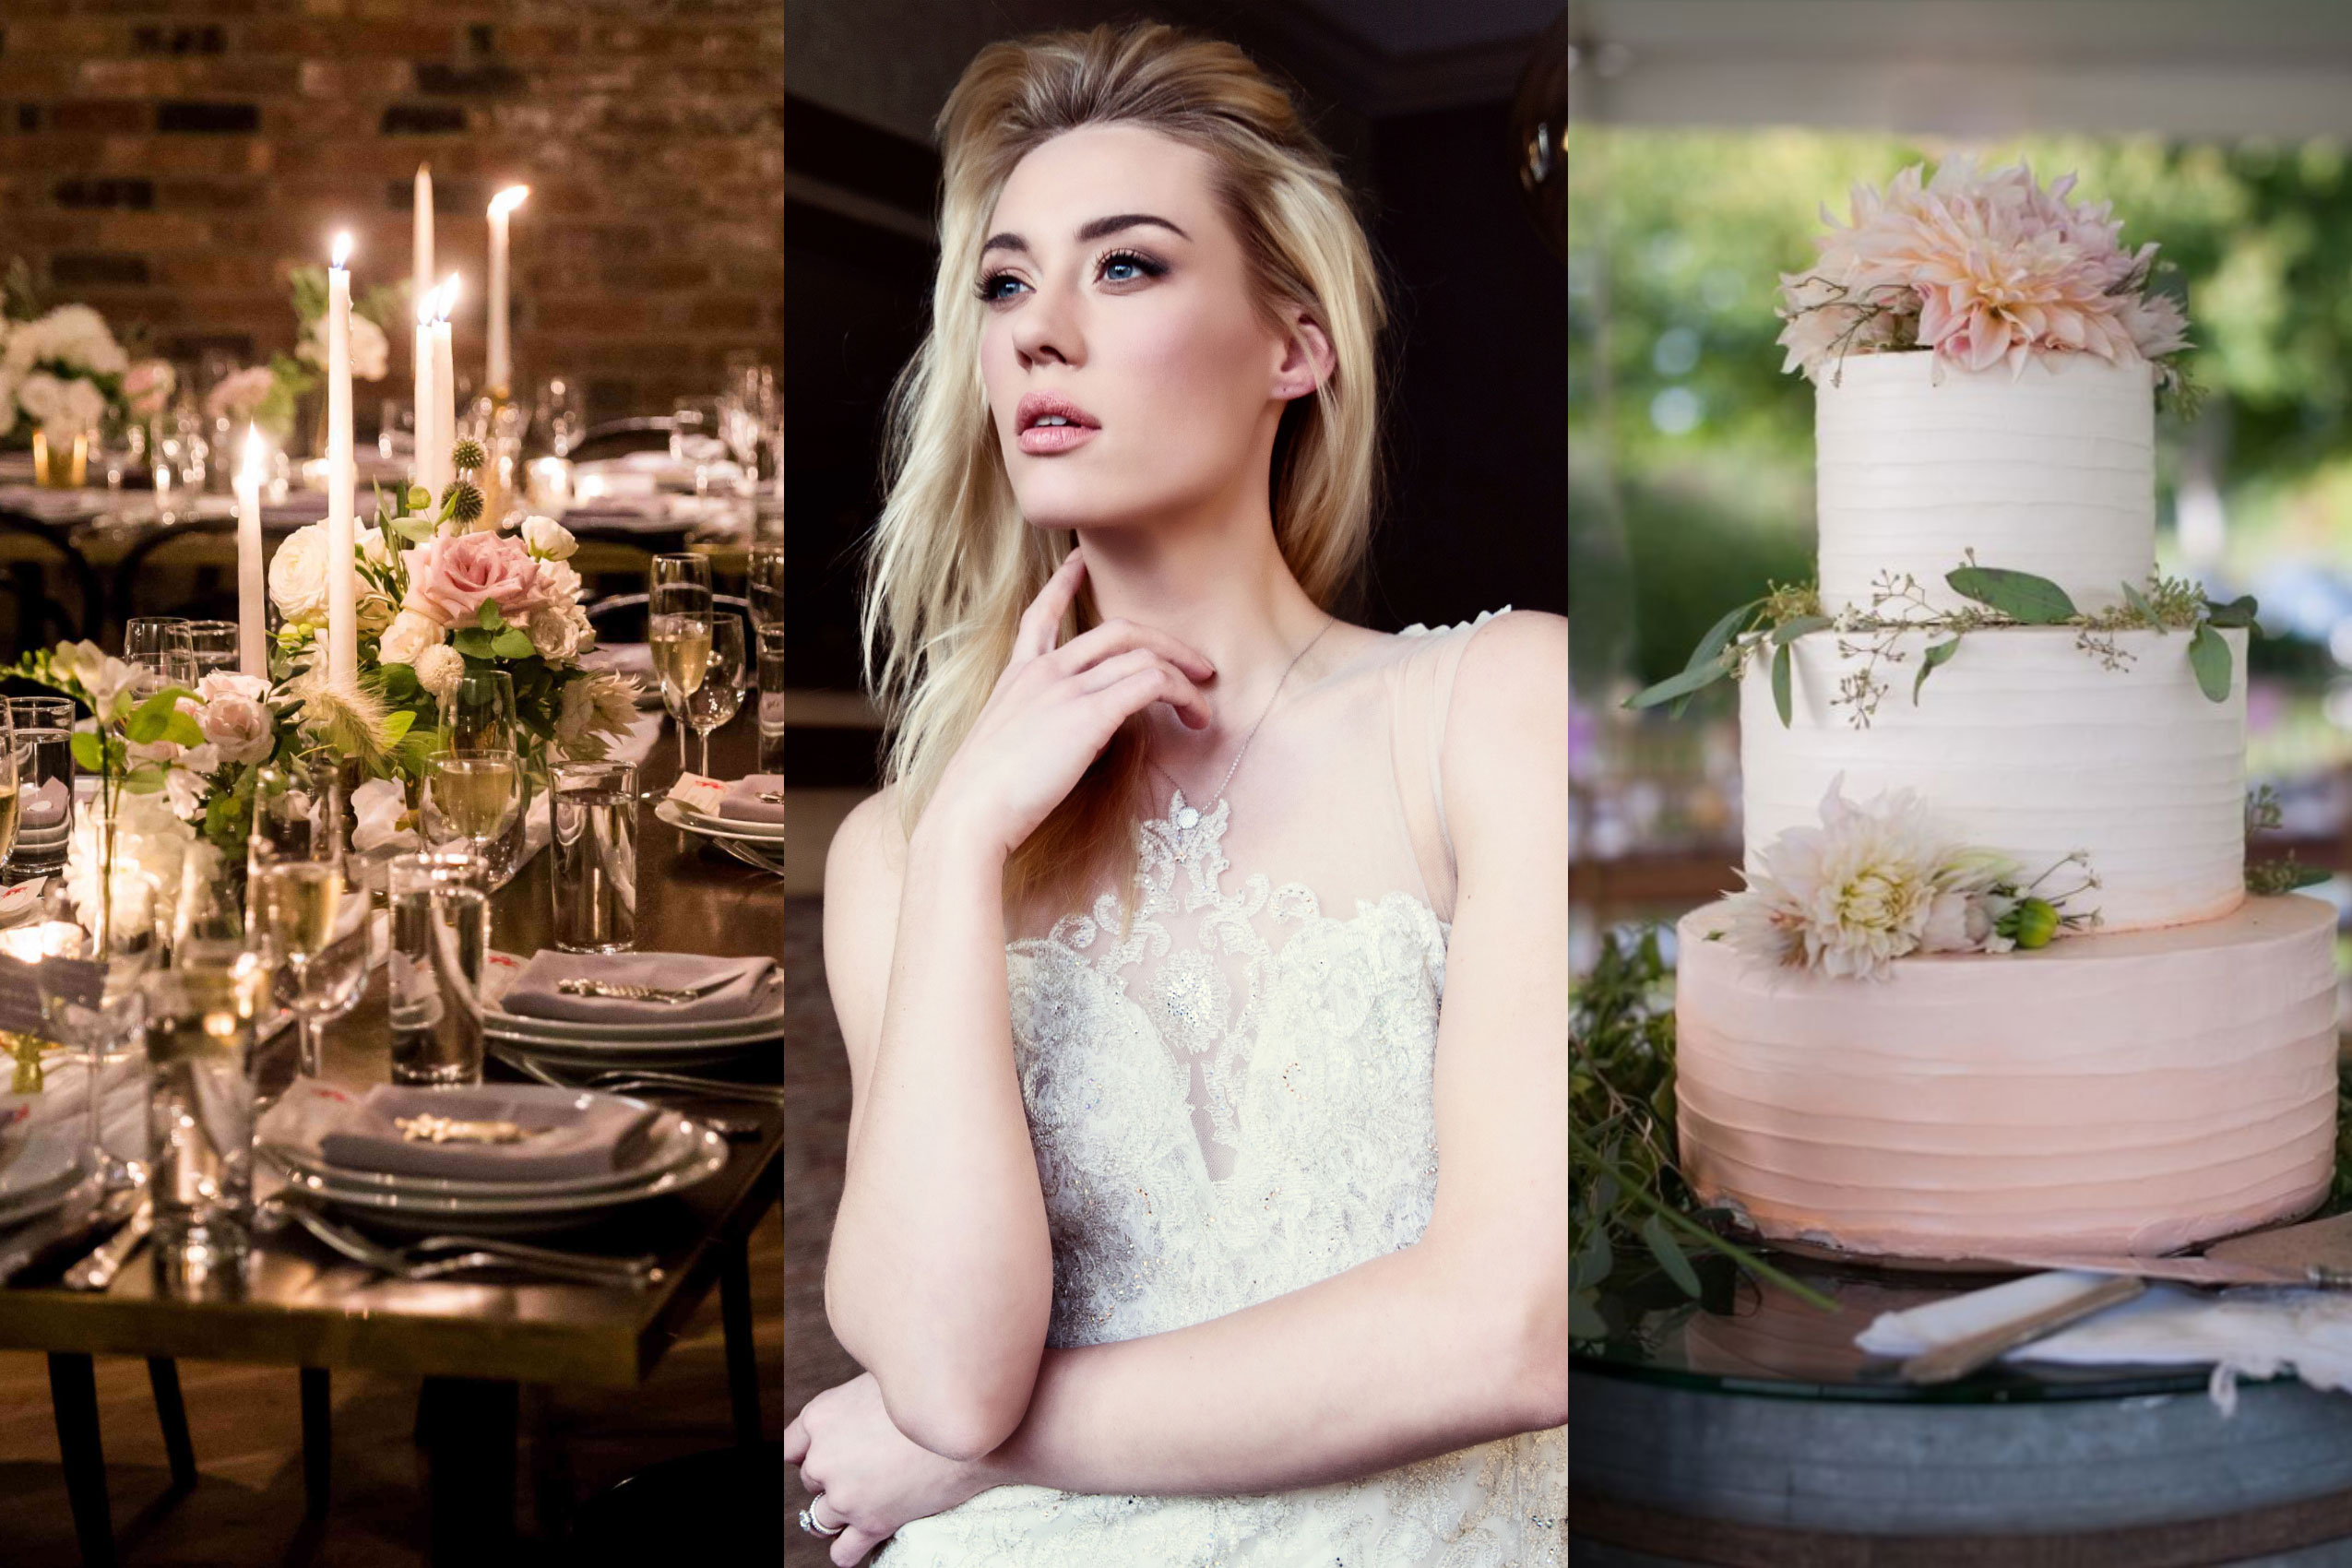 Natural Wedding Makeup with rose toned blush and lip color